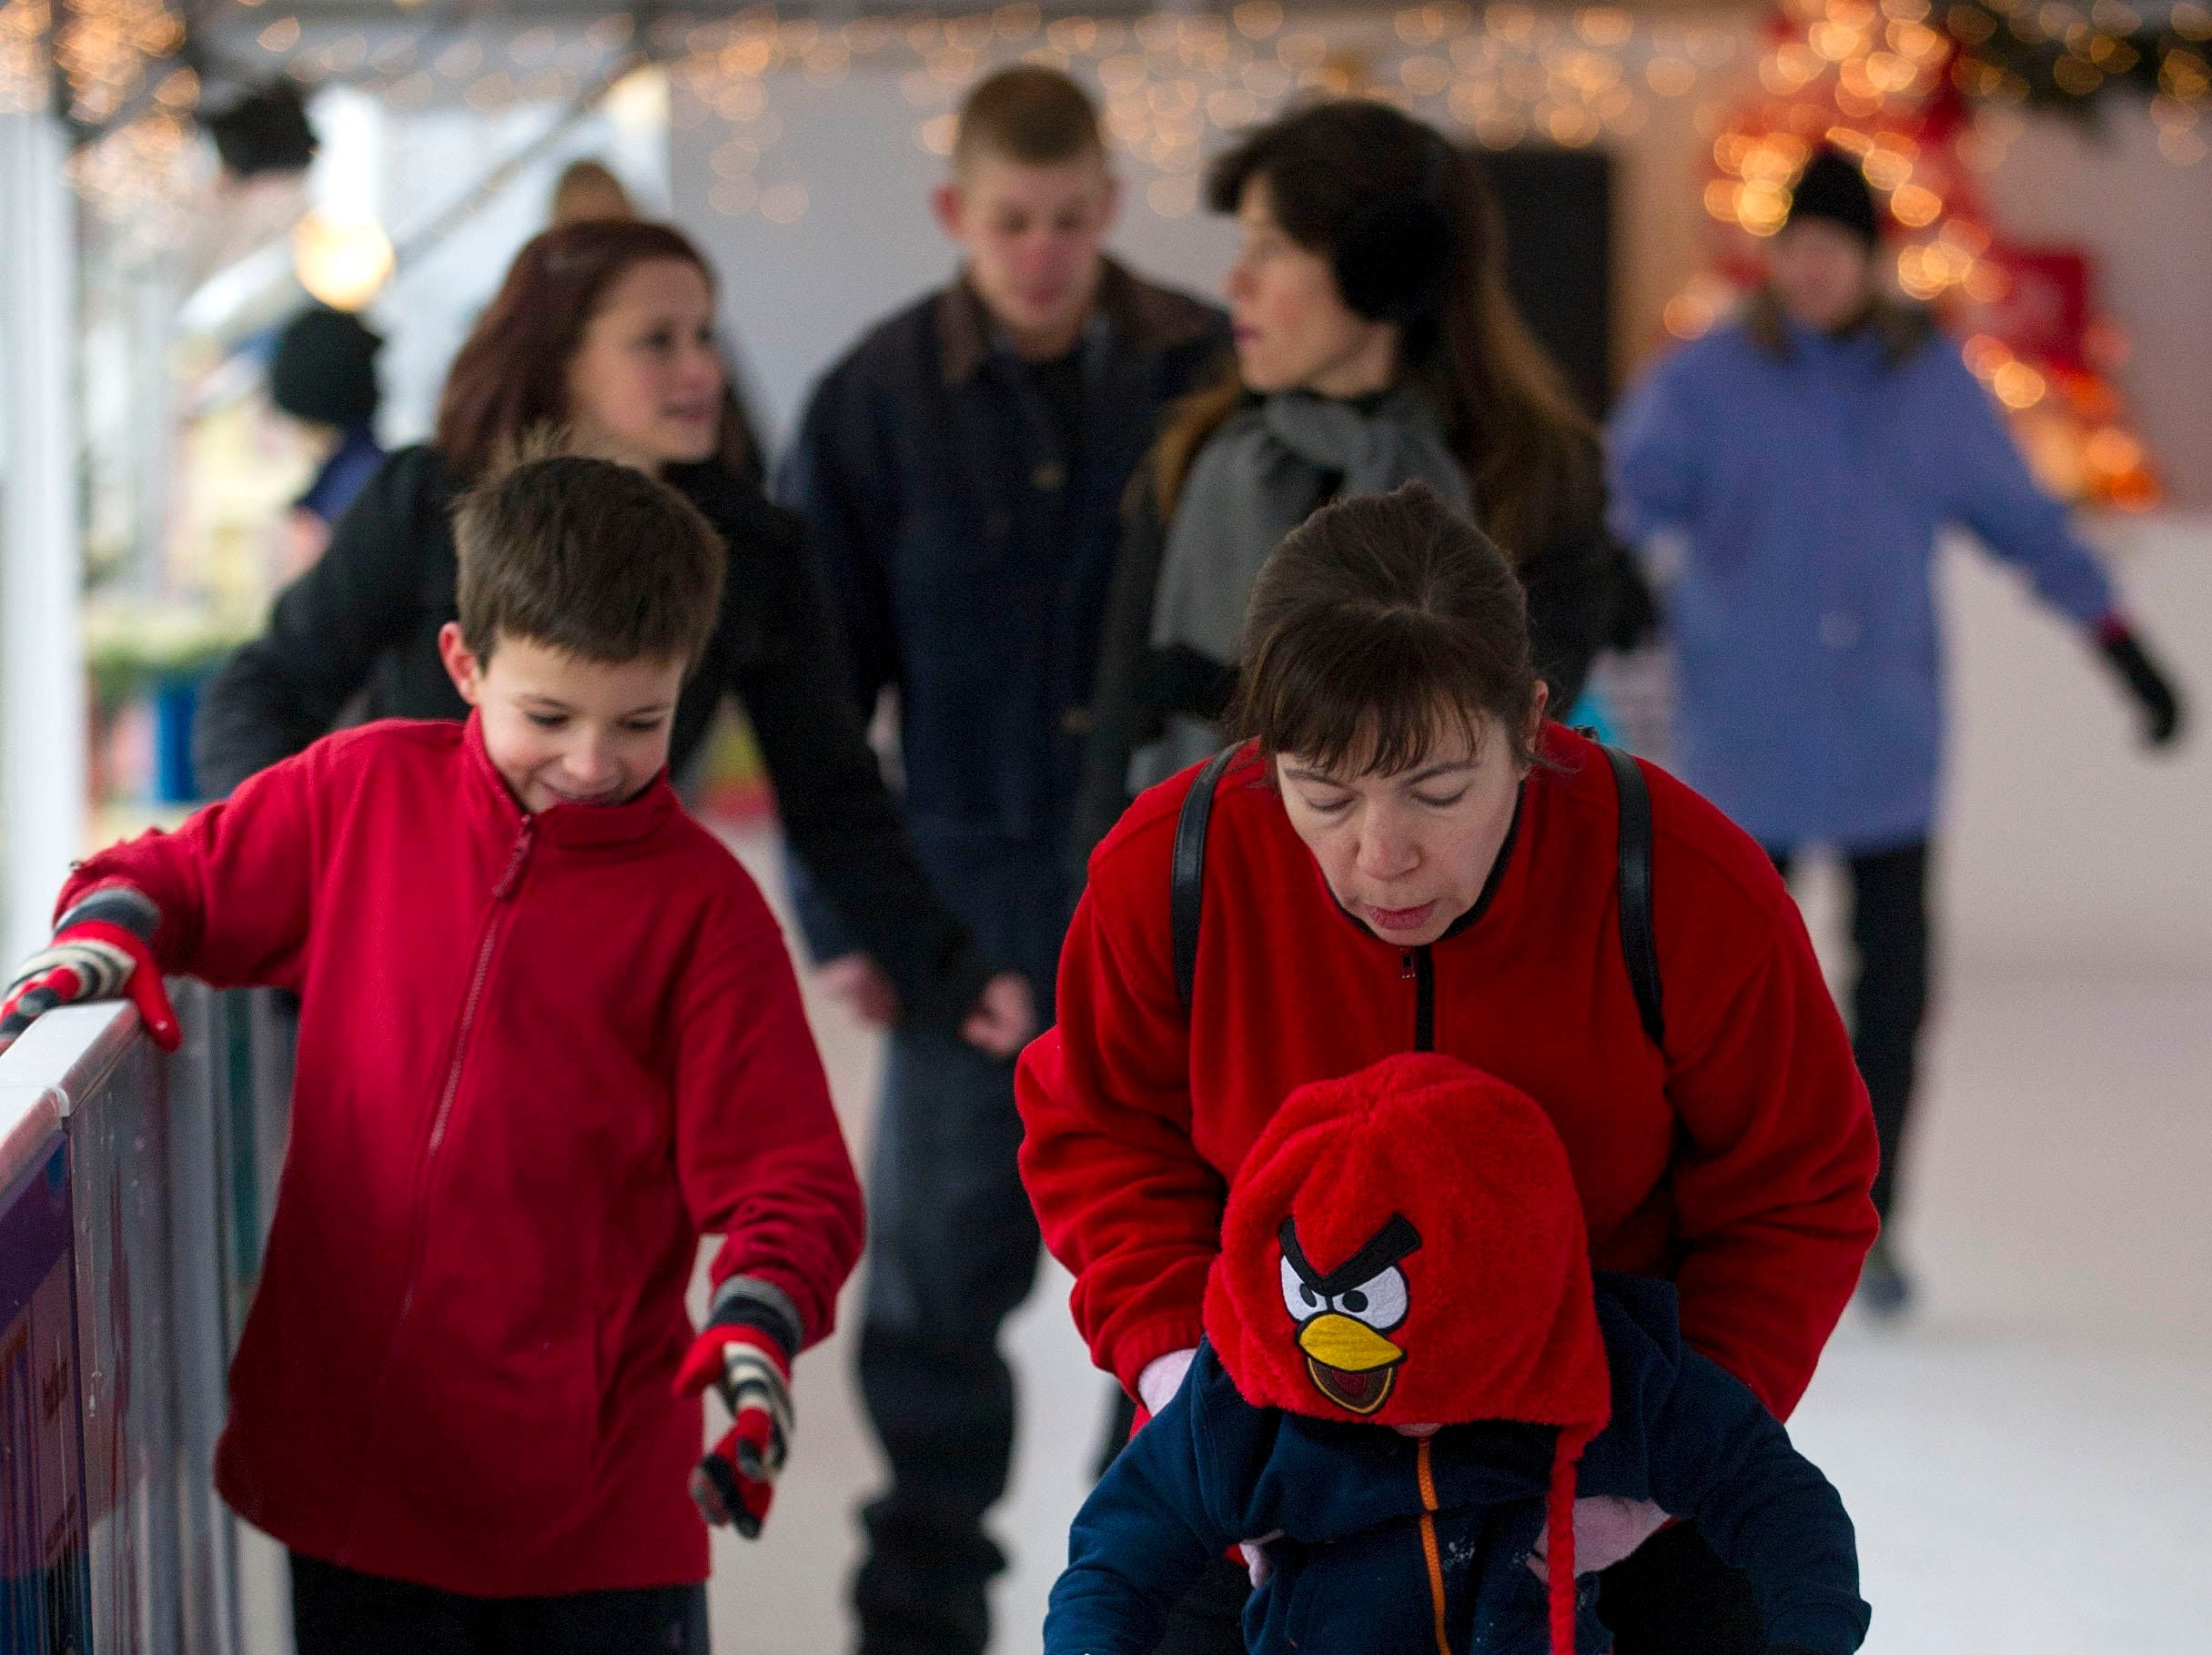 Aimee Ward helps her son Jake Ward, 4, learn to skate at the outdoor ice skating rink on Market Square in Downtown Knoxville on Dec. 24, 2013.